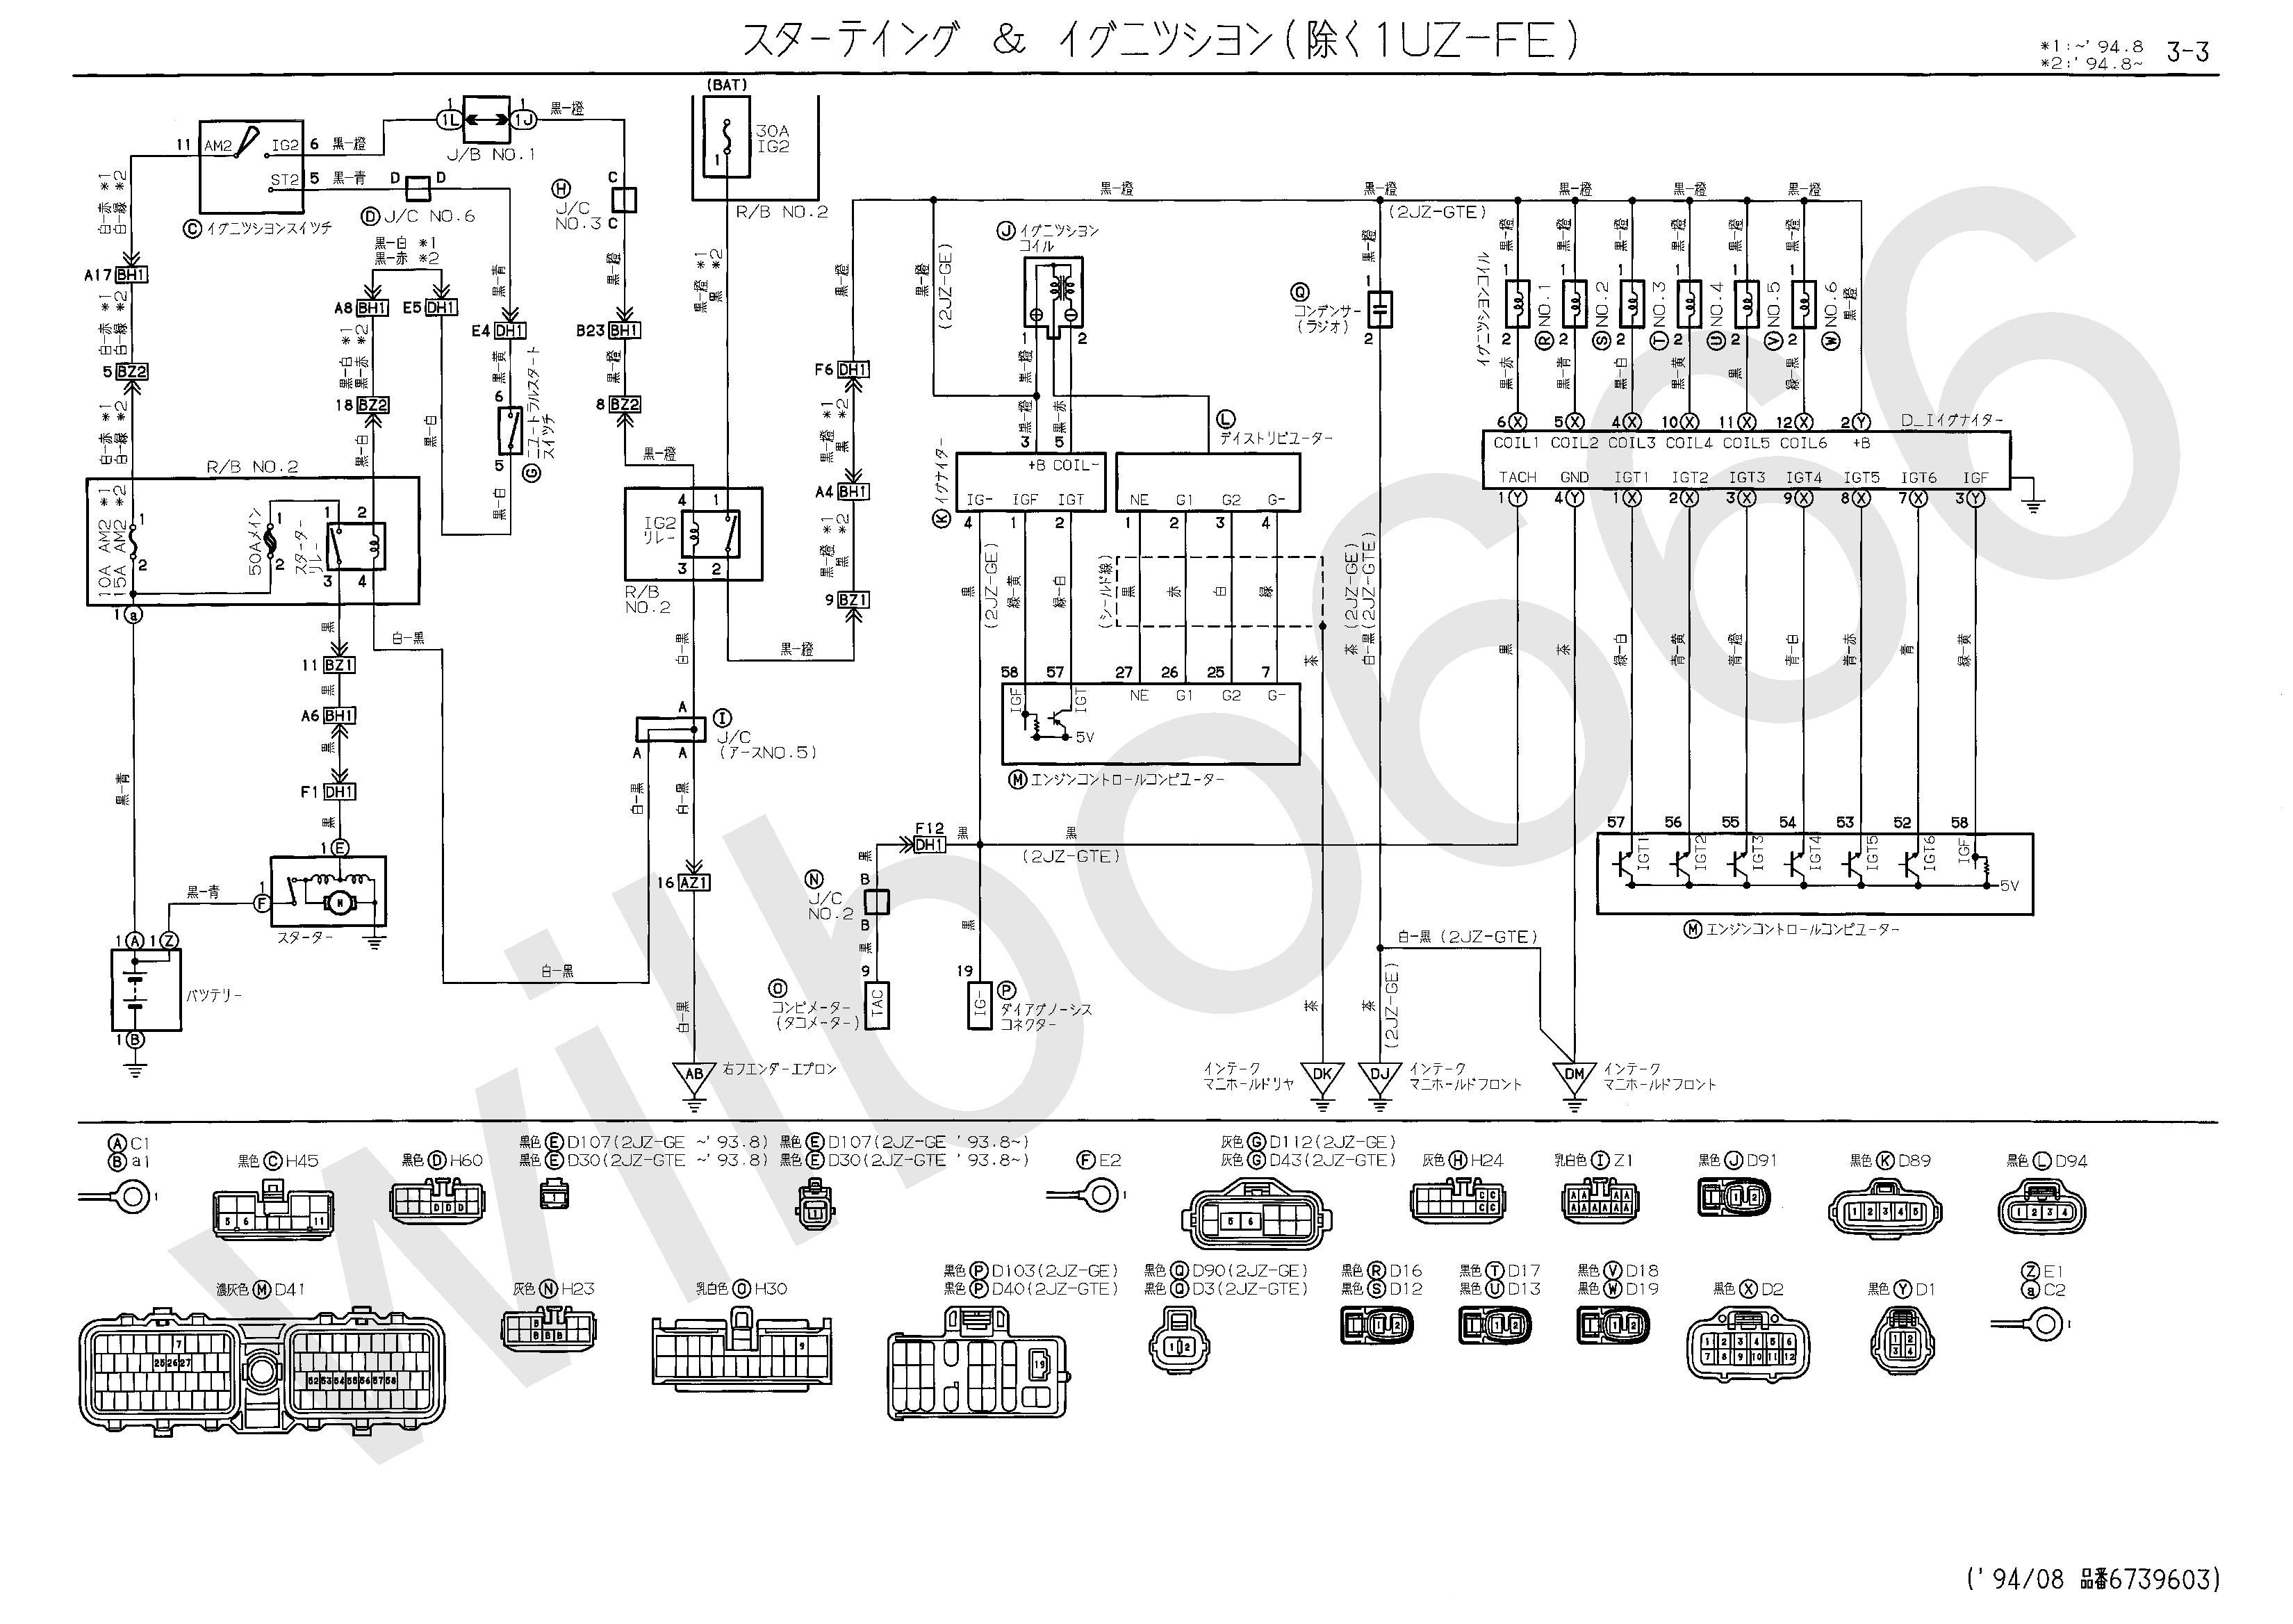 JZS14%23%2C UZS14%23 Electrical Wiring Diagram 6739604 3 3 wilbo666 2jz gte jzs147 aristo engine wiring 2jzgte wiring diagram at mifinder.co